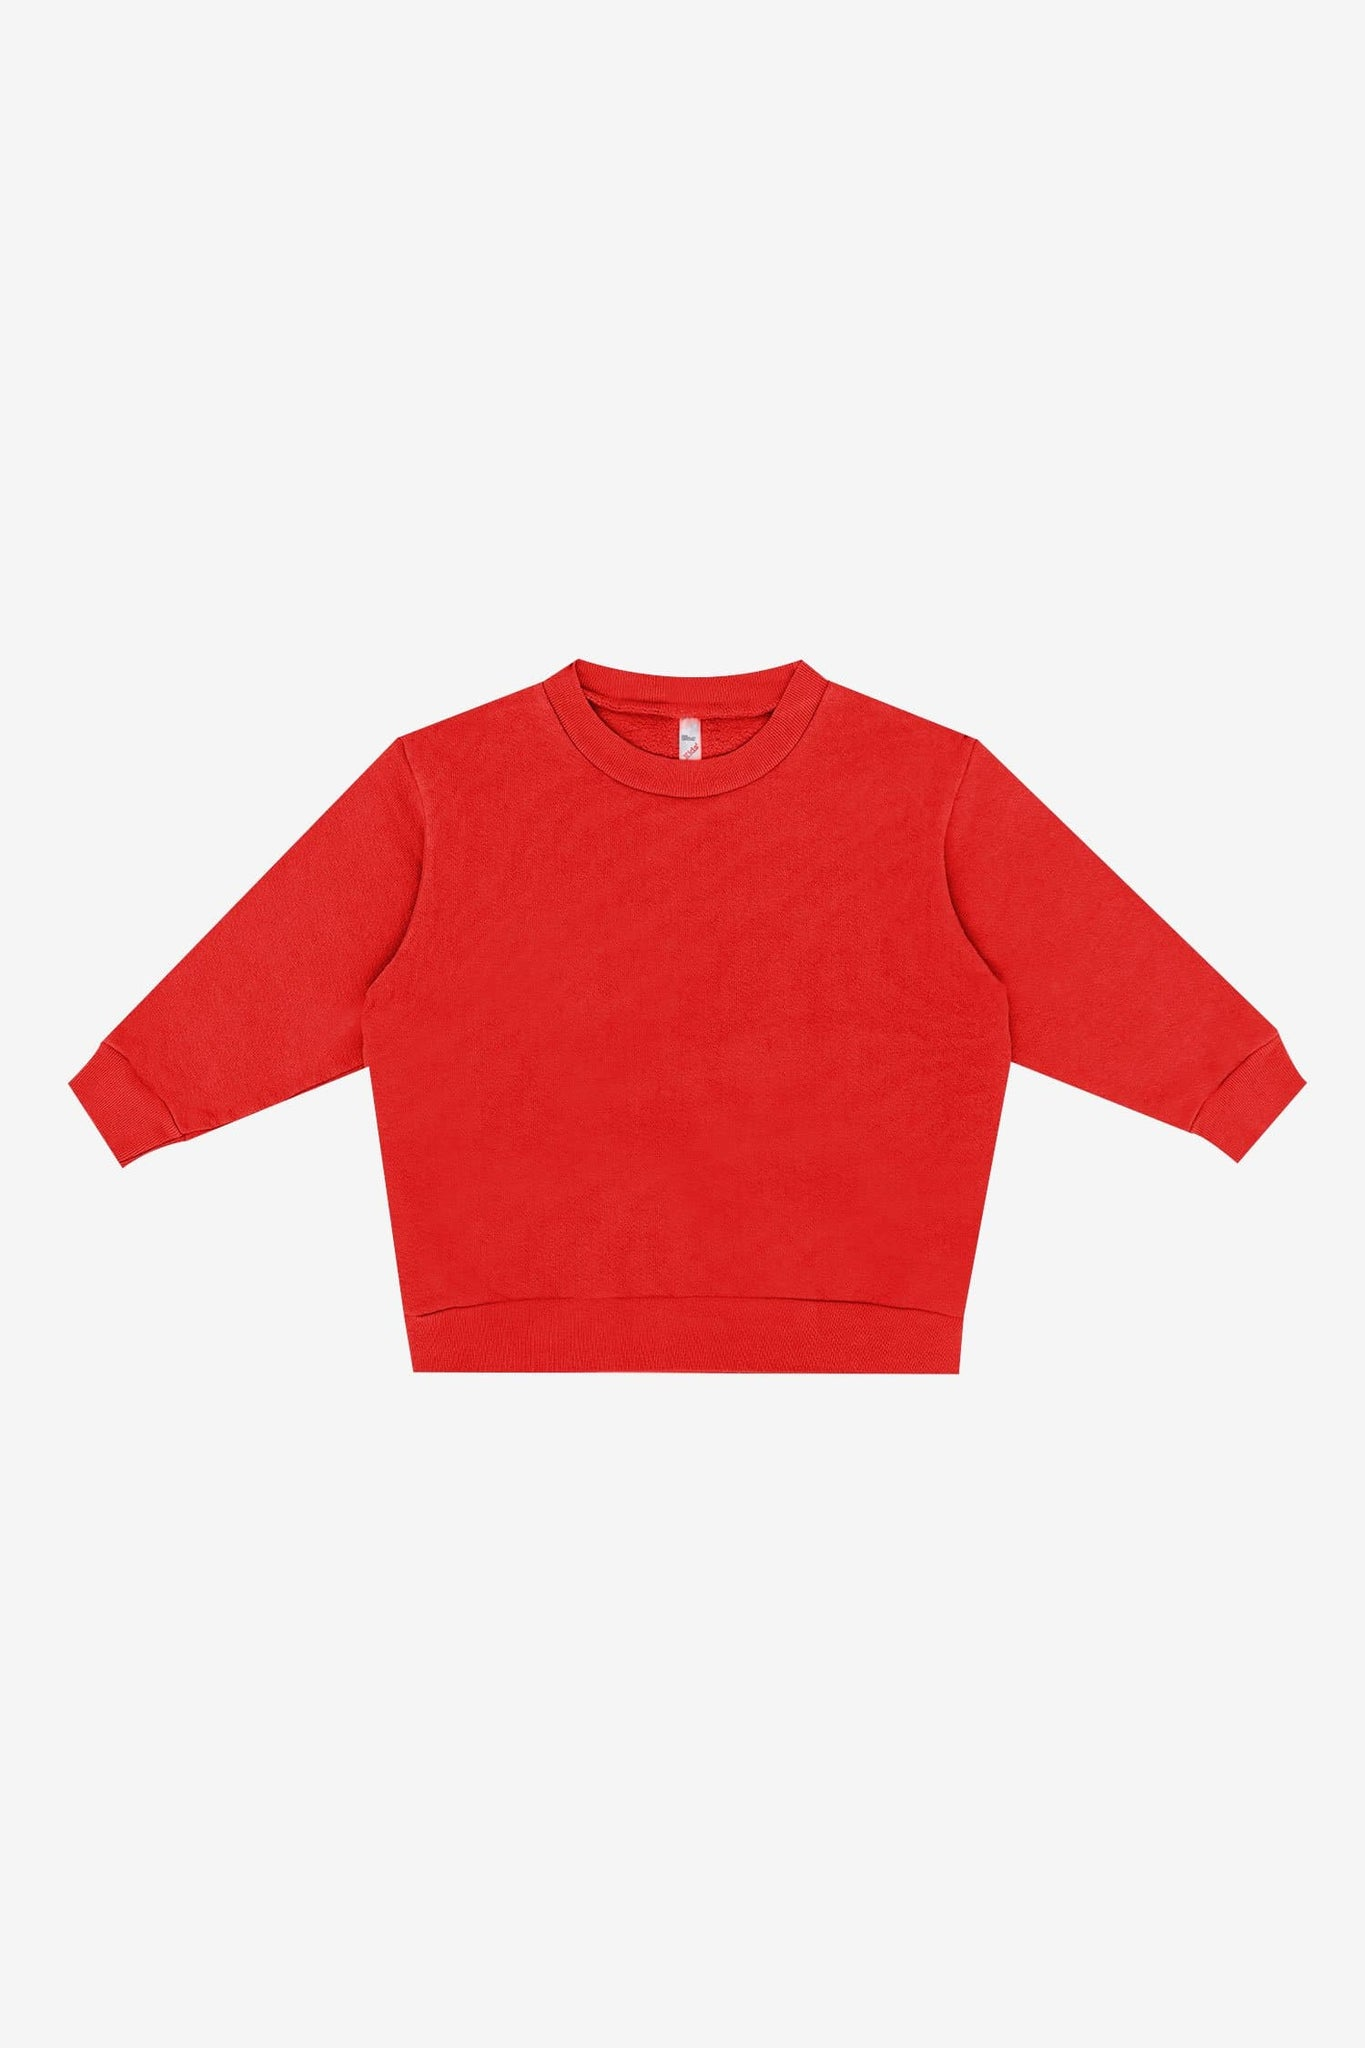 HF107GD - Toddler Heavy Fleece Garment Dye Crewneck Sweatshirt